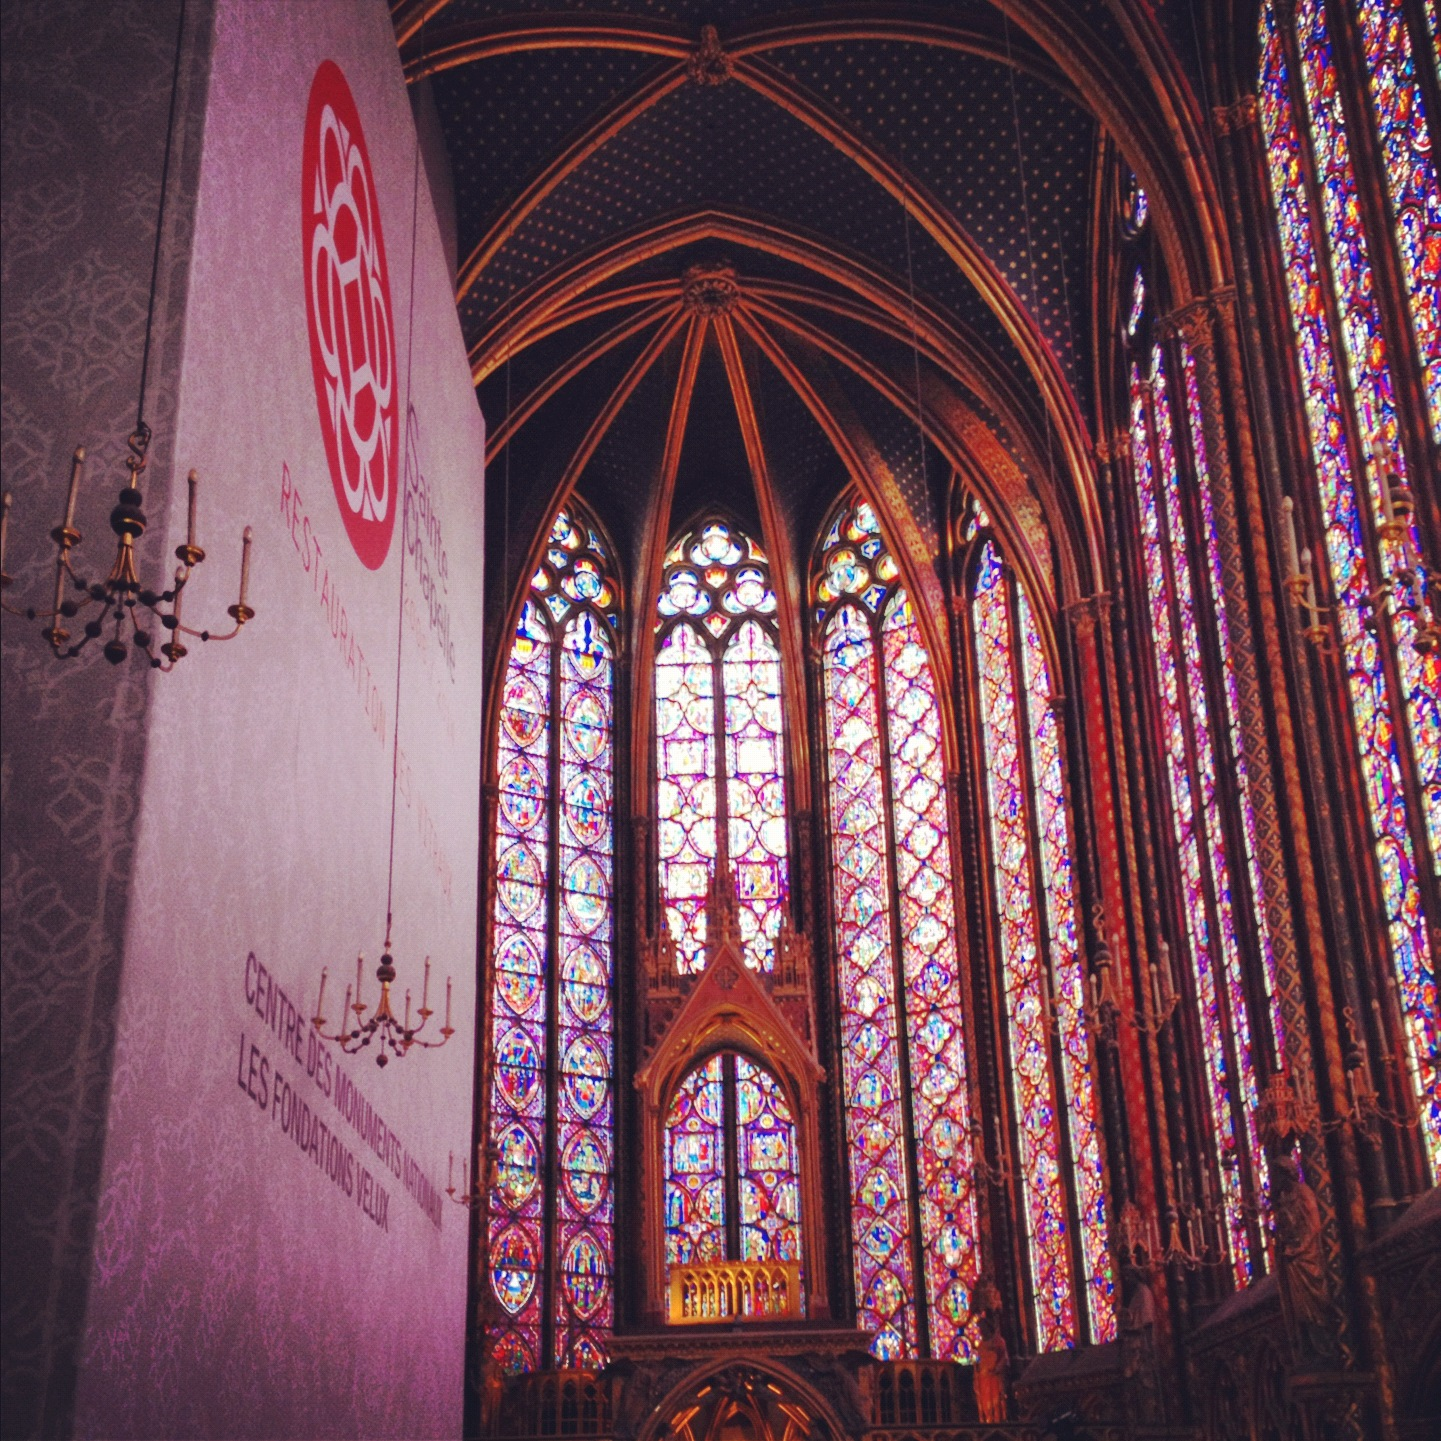 Walls of stained glass at Sainte-Chapelle